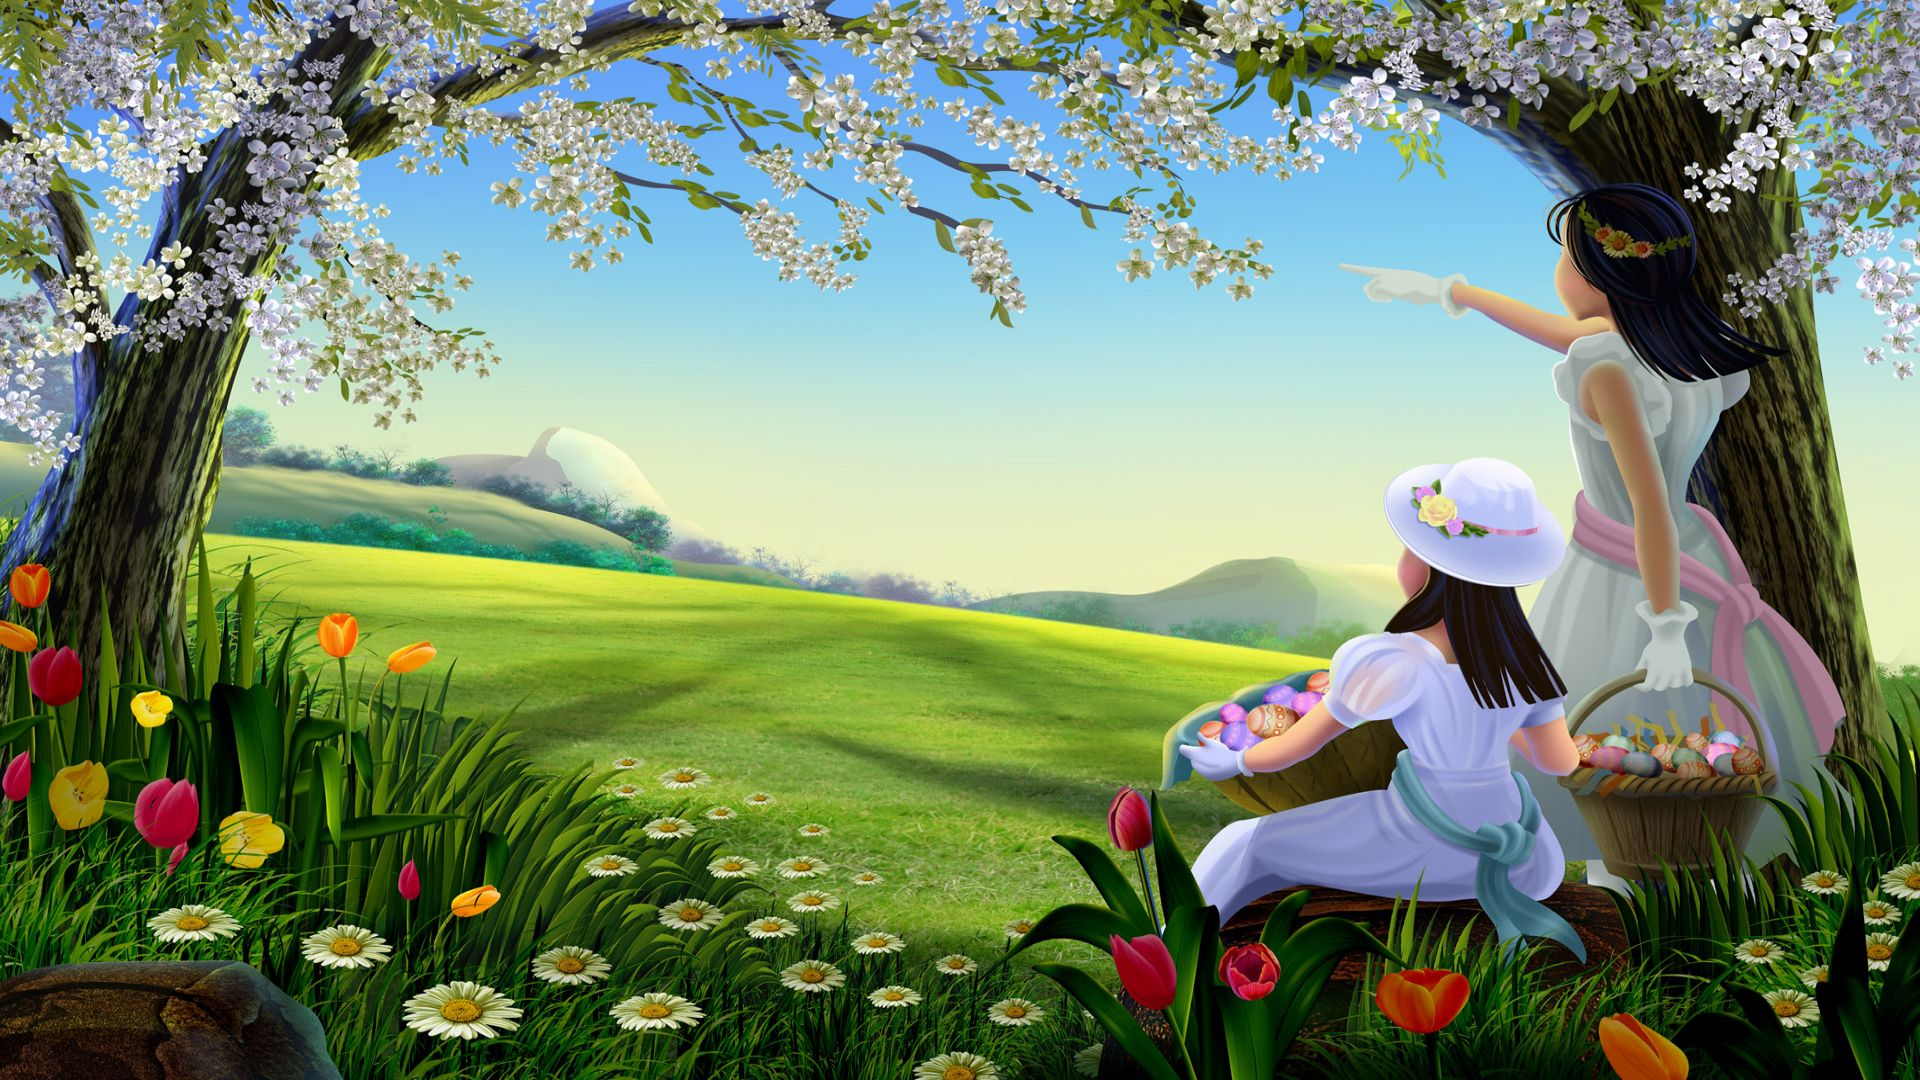 Picnic Free Wallpaper 83.26 Kb